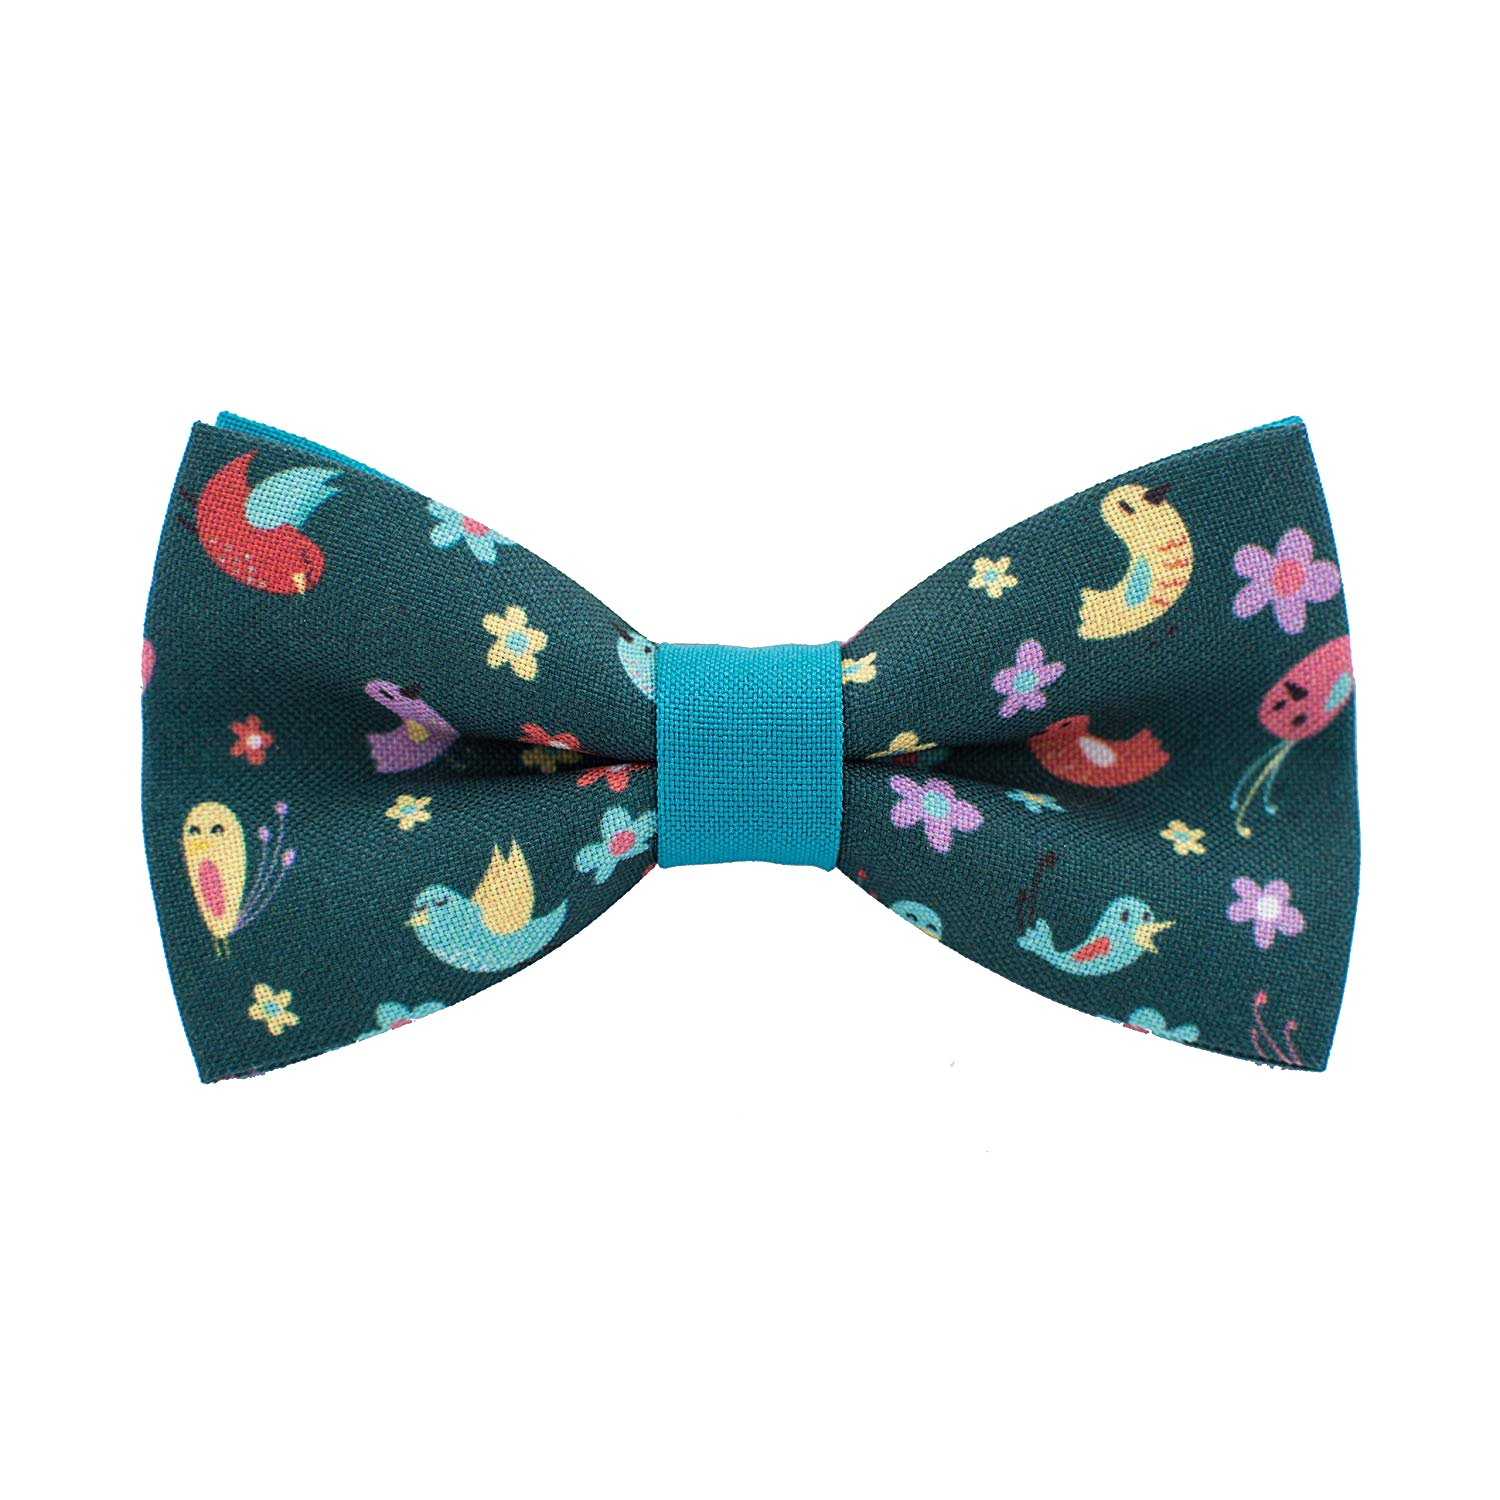 Bow Tie House Birds on field of flowers pattern bow tie unisex pre-tied shape 09283